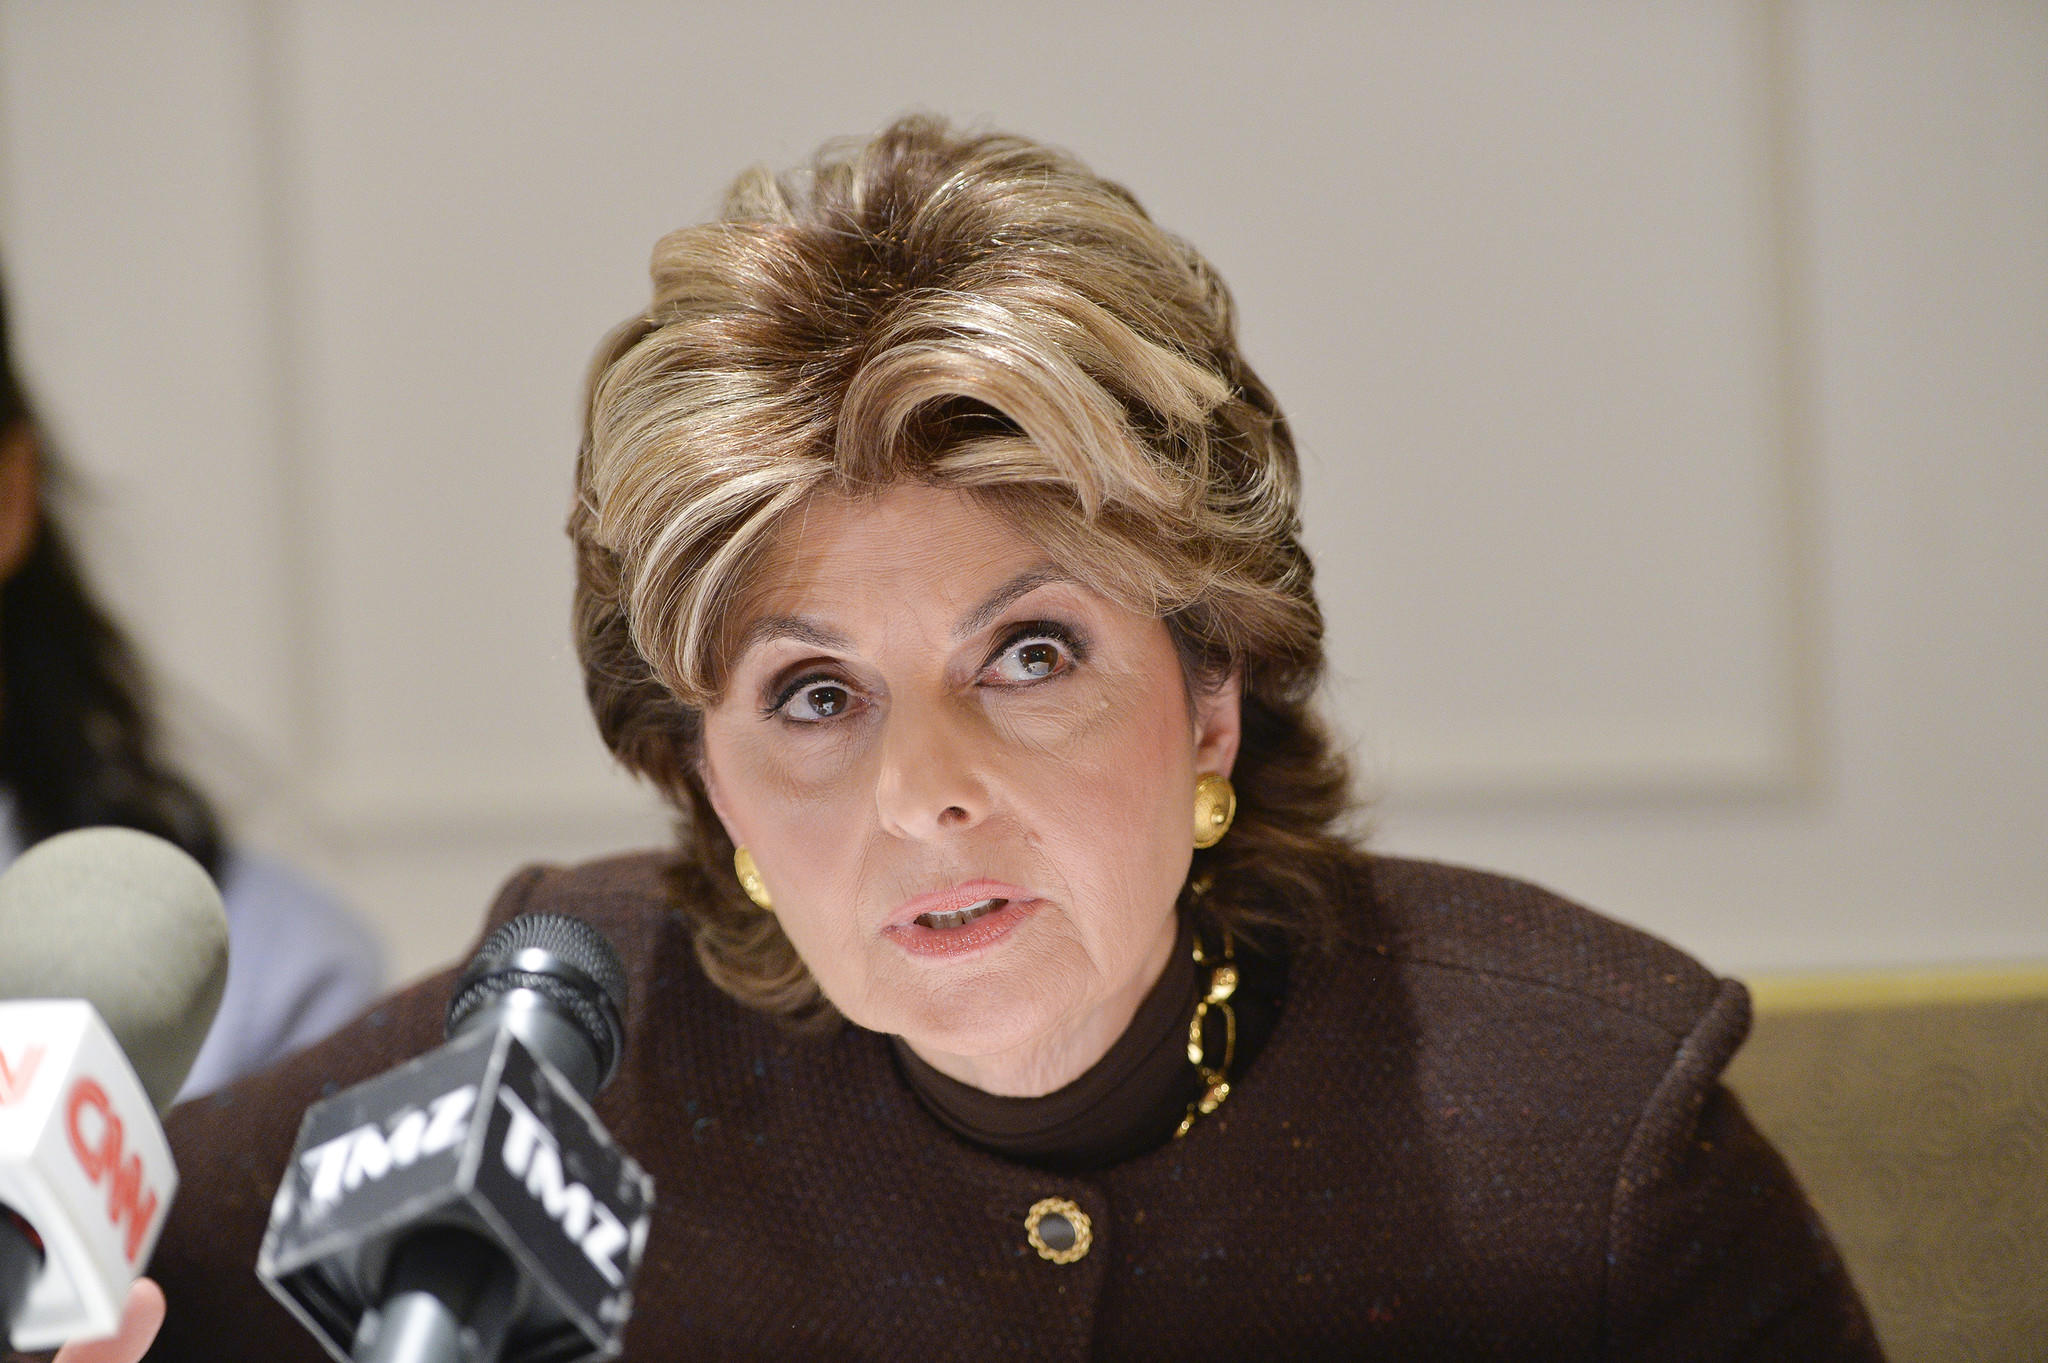 Attorney Gloria Allred will be part of a panel on sexual harassment in the entertainment industry hosted by SAG-AFTRA next week. (Howard Simmons / New York Daily News)